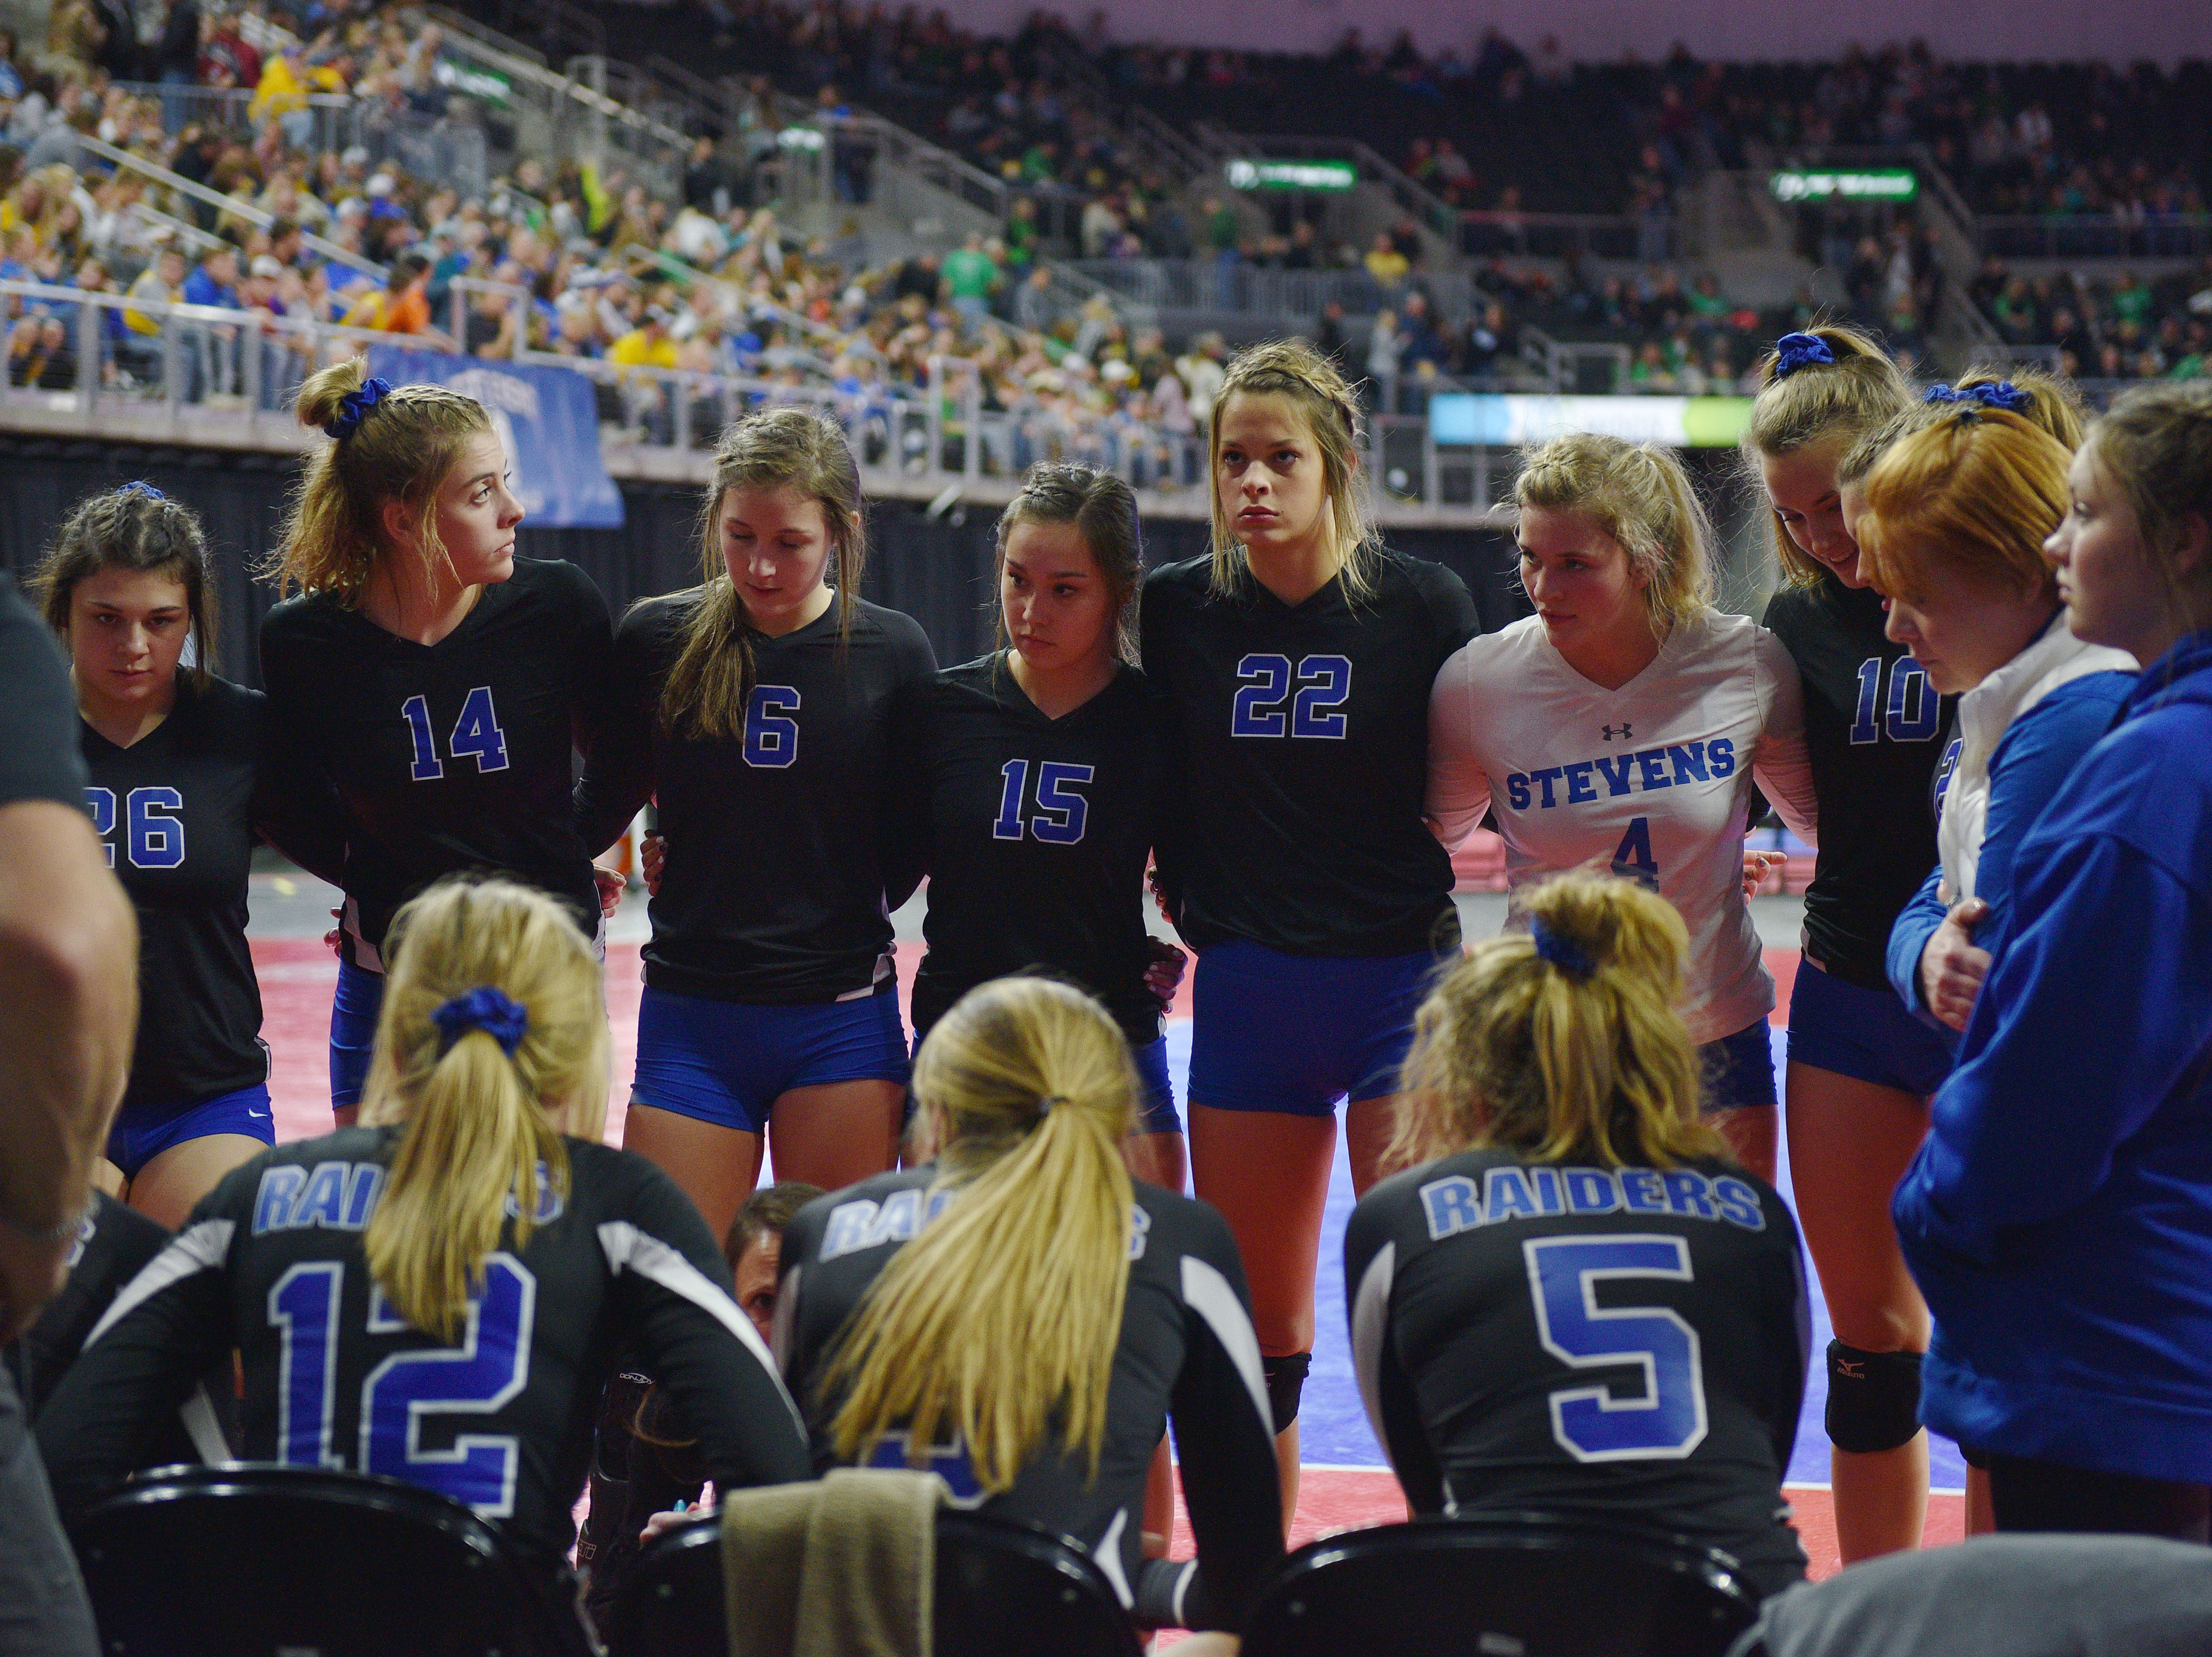 RC Stevens gets in a huddle in the game against Watertown during the semifinals Friday, Nov. 16, at the Denny Sanford Premier Center in Sioux Falls.